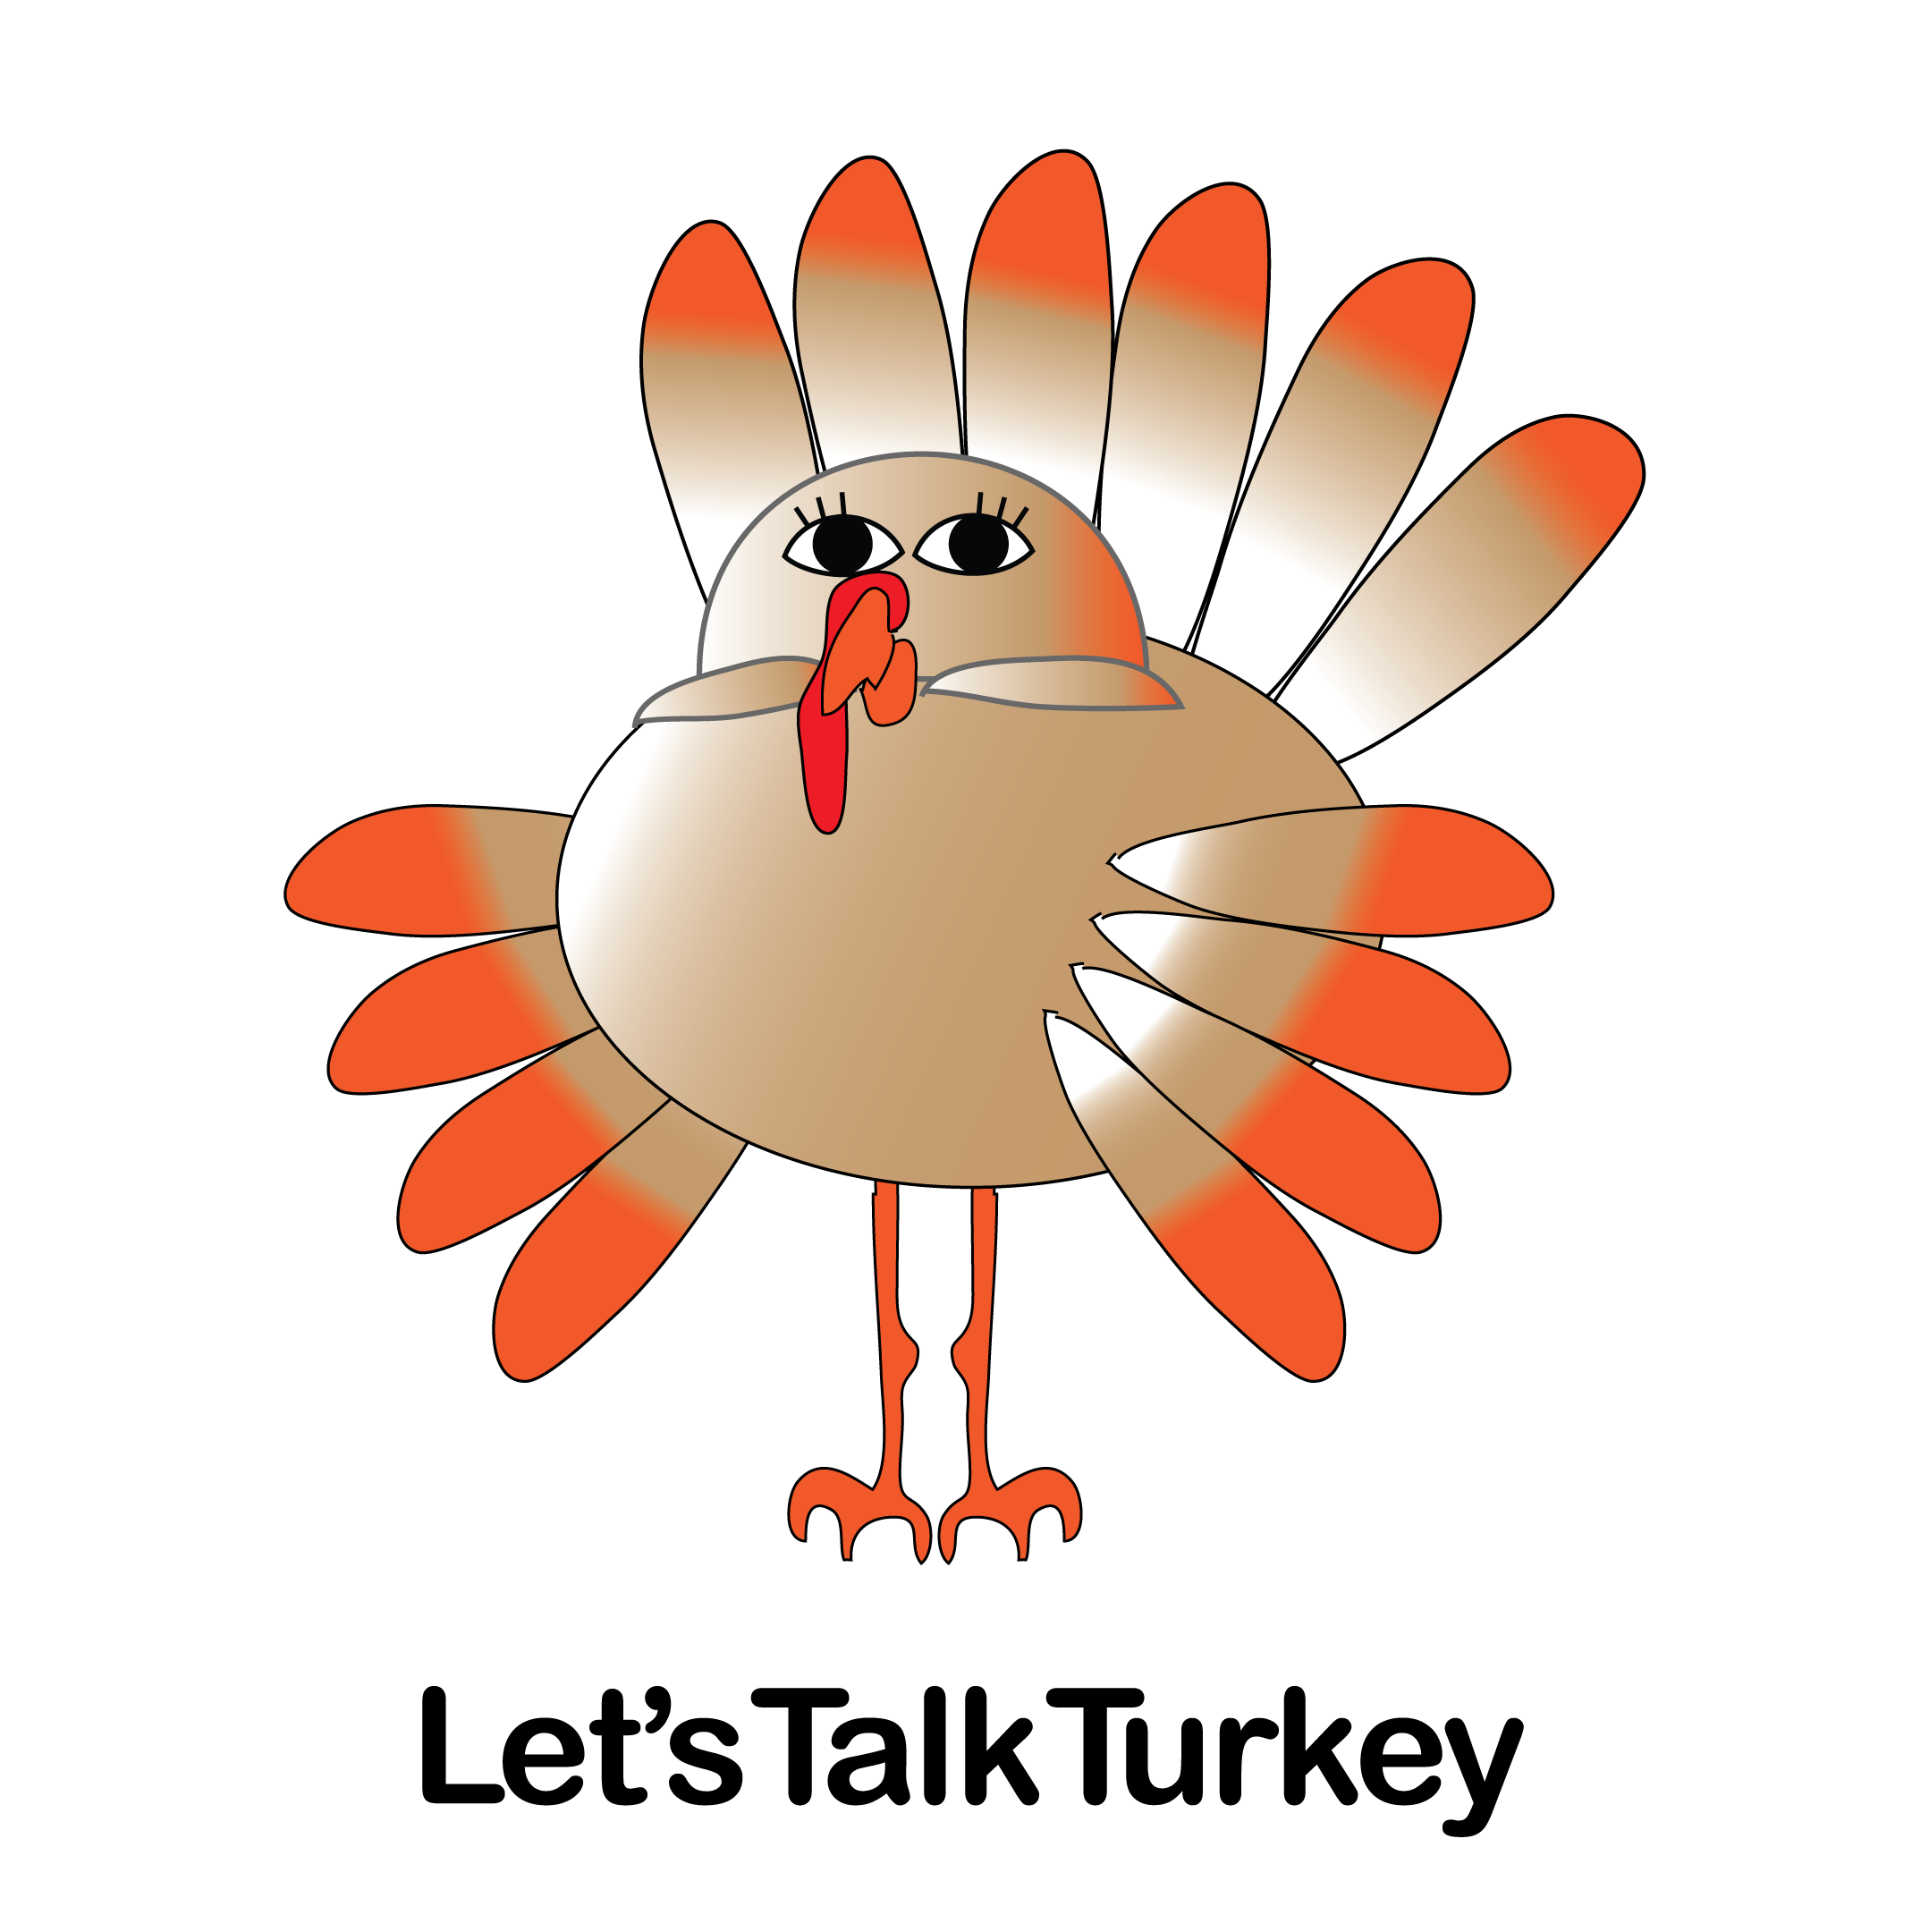 Gobble Gobble Thanksgiving Time Is Turkey Time New Big Eye Turkey Image Is Now Available On Bookmarks An Thanksgiving Wishes Thanksgiving Time Turkey Images